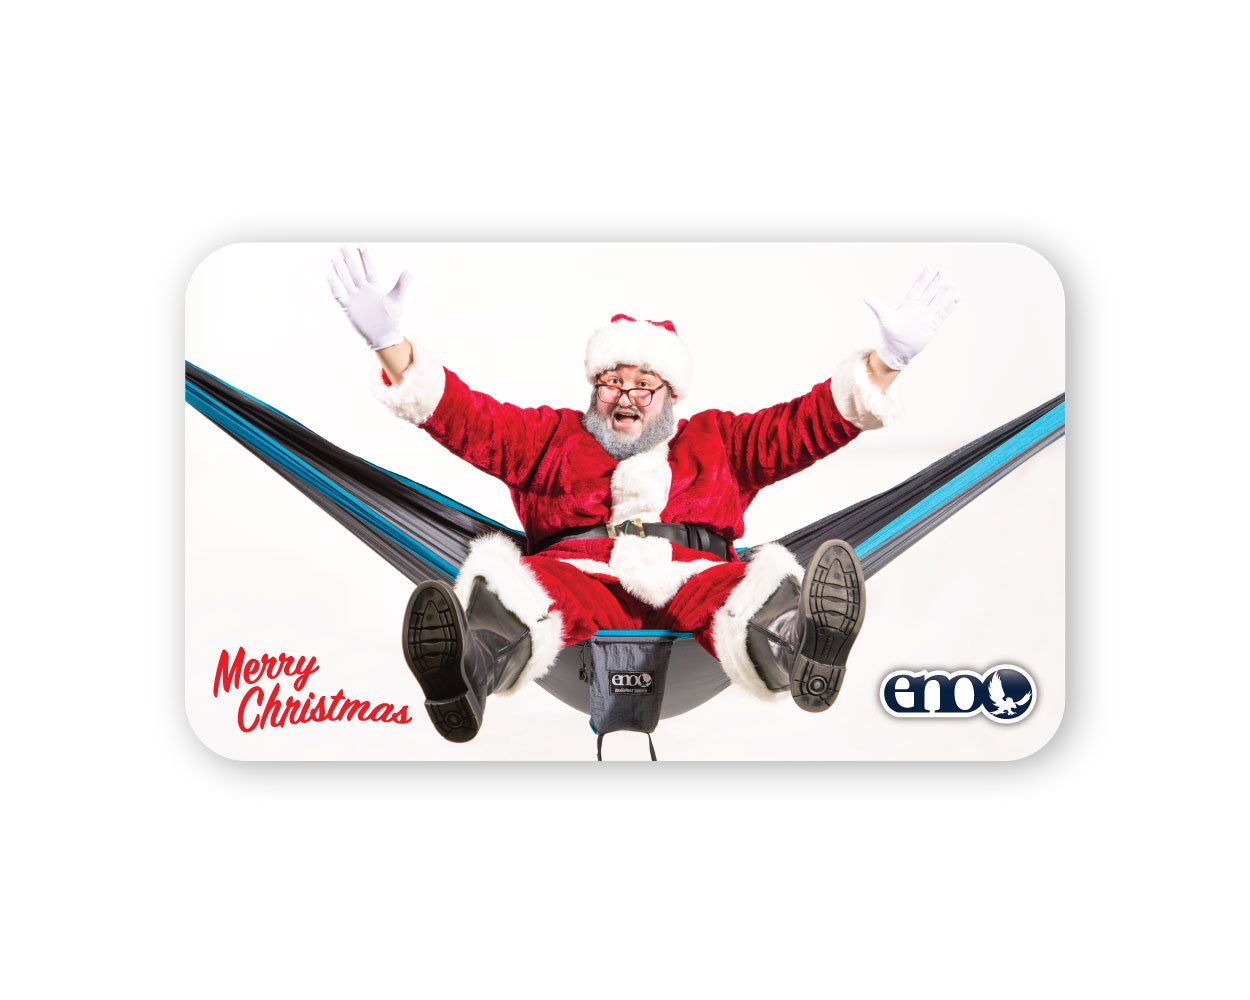 ENO Nation $25.00 / Merry Christmas Gift Card